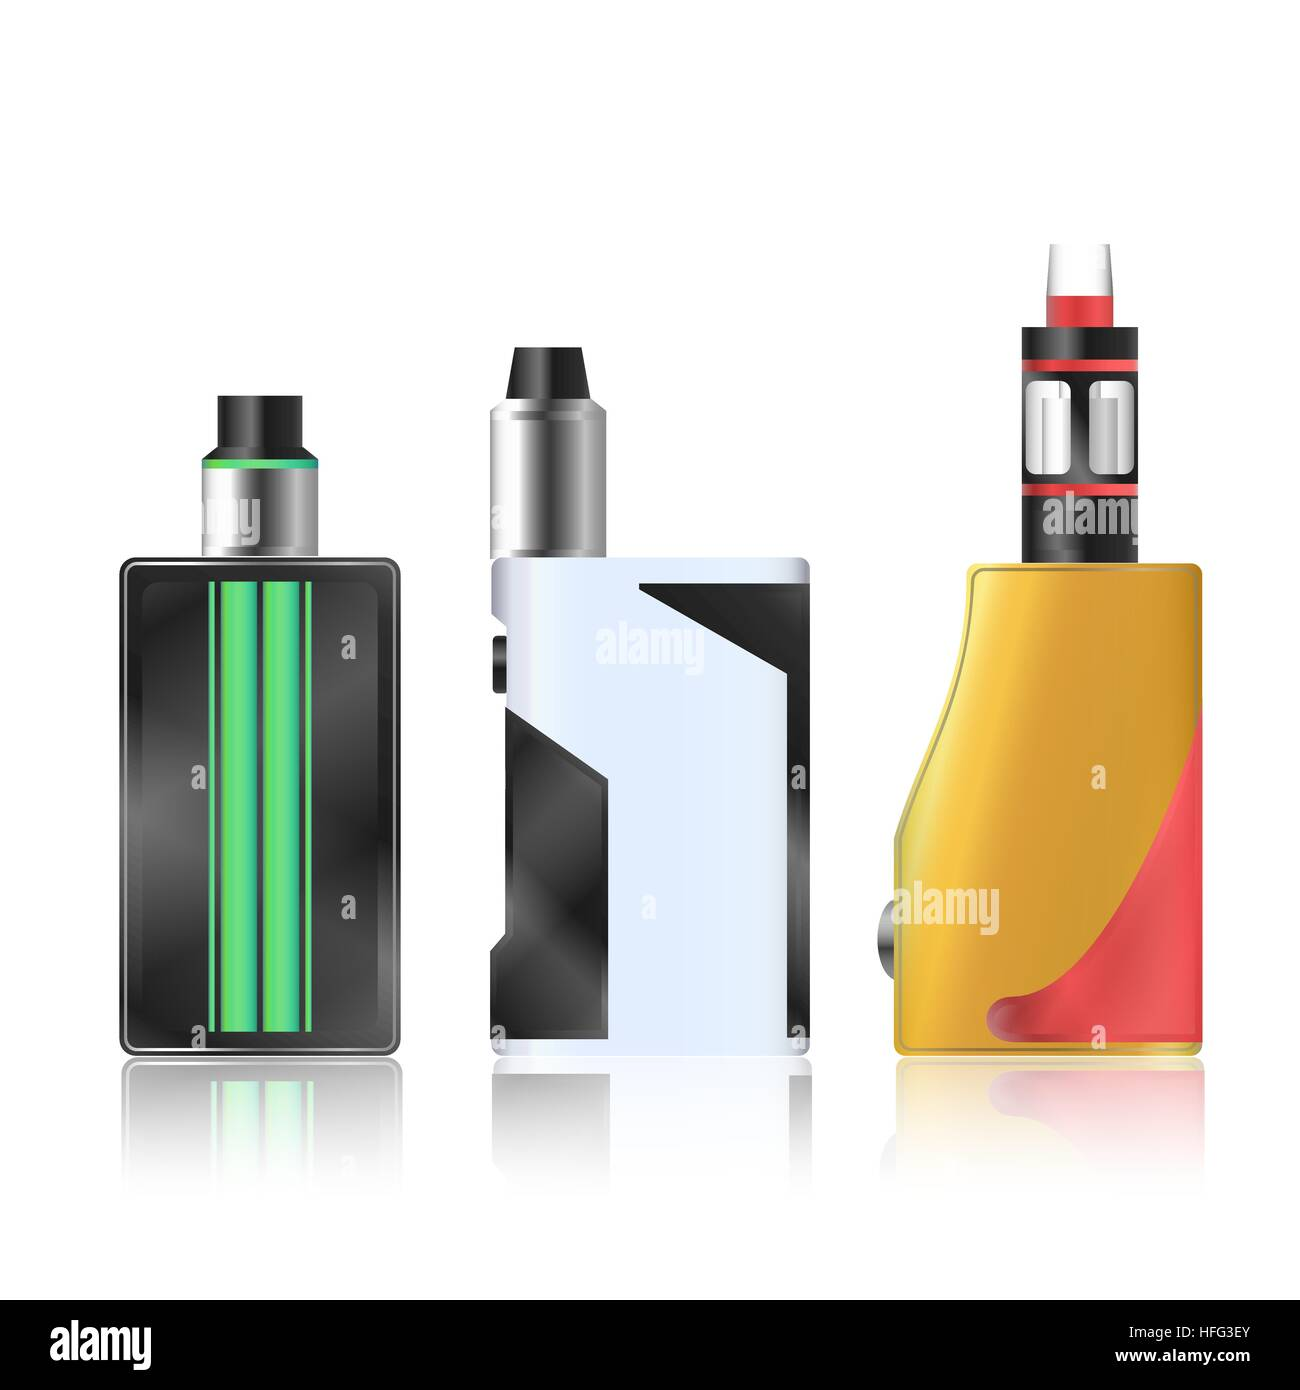 Vape Mod Set. Electronic Cigarette With Juice. Colorful Vector Vaporize Device With Liquid Bottles On White Background. - Stock Image